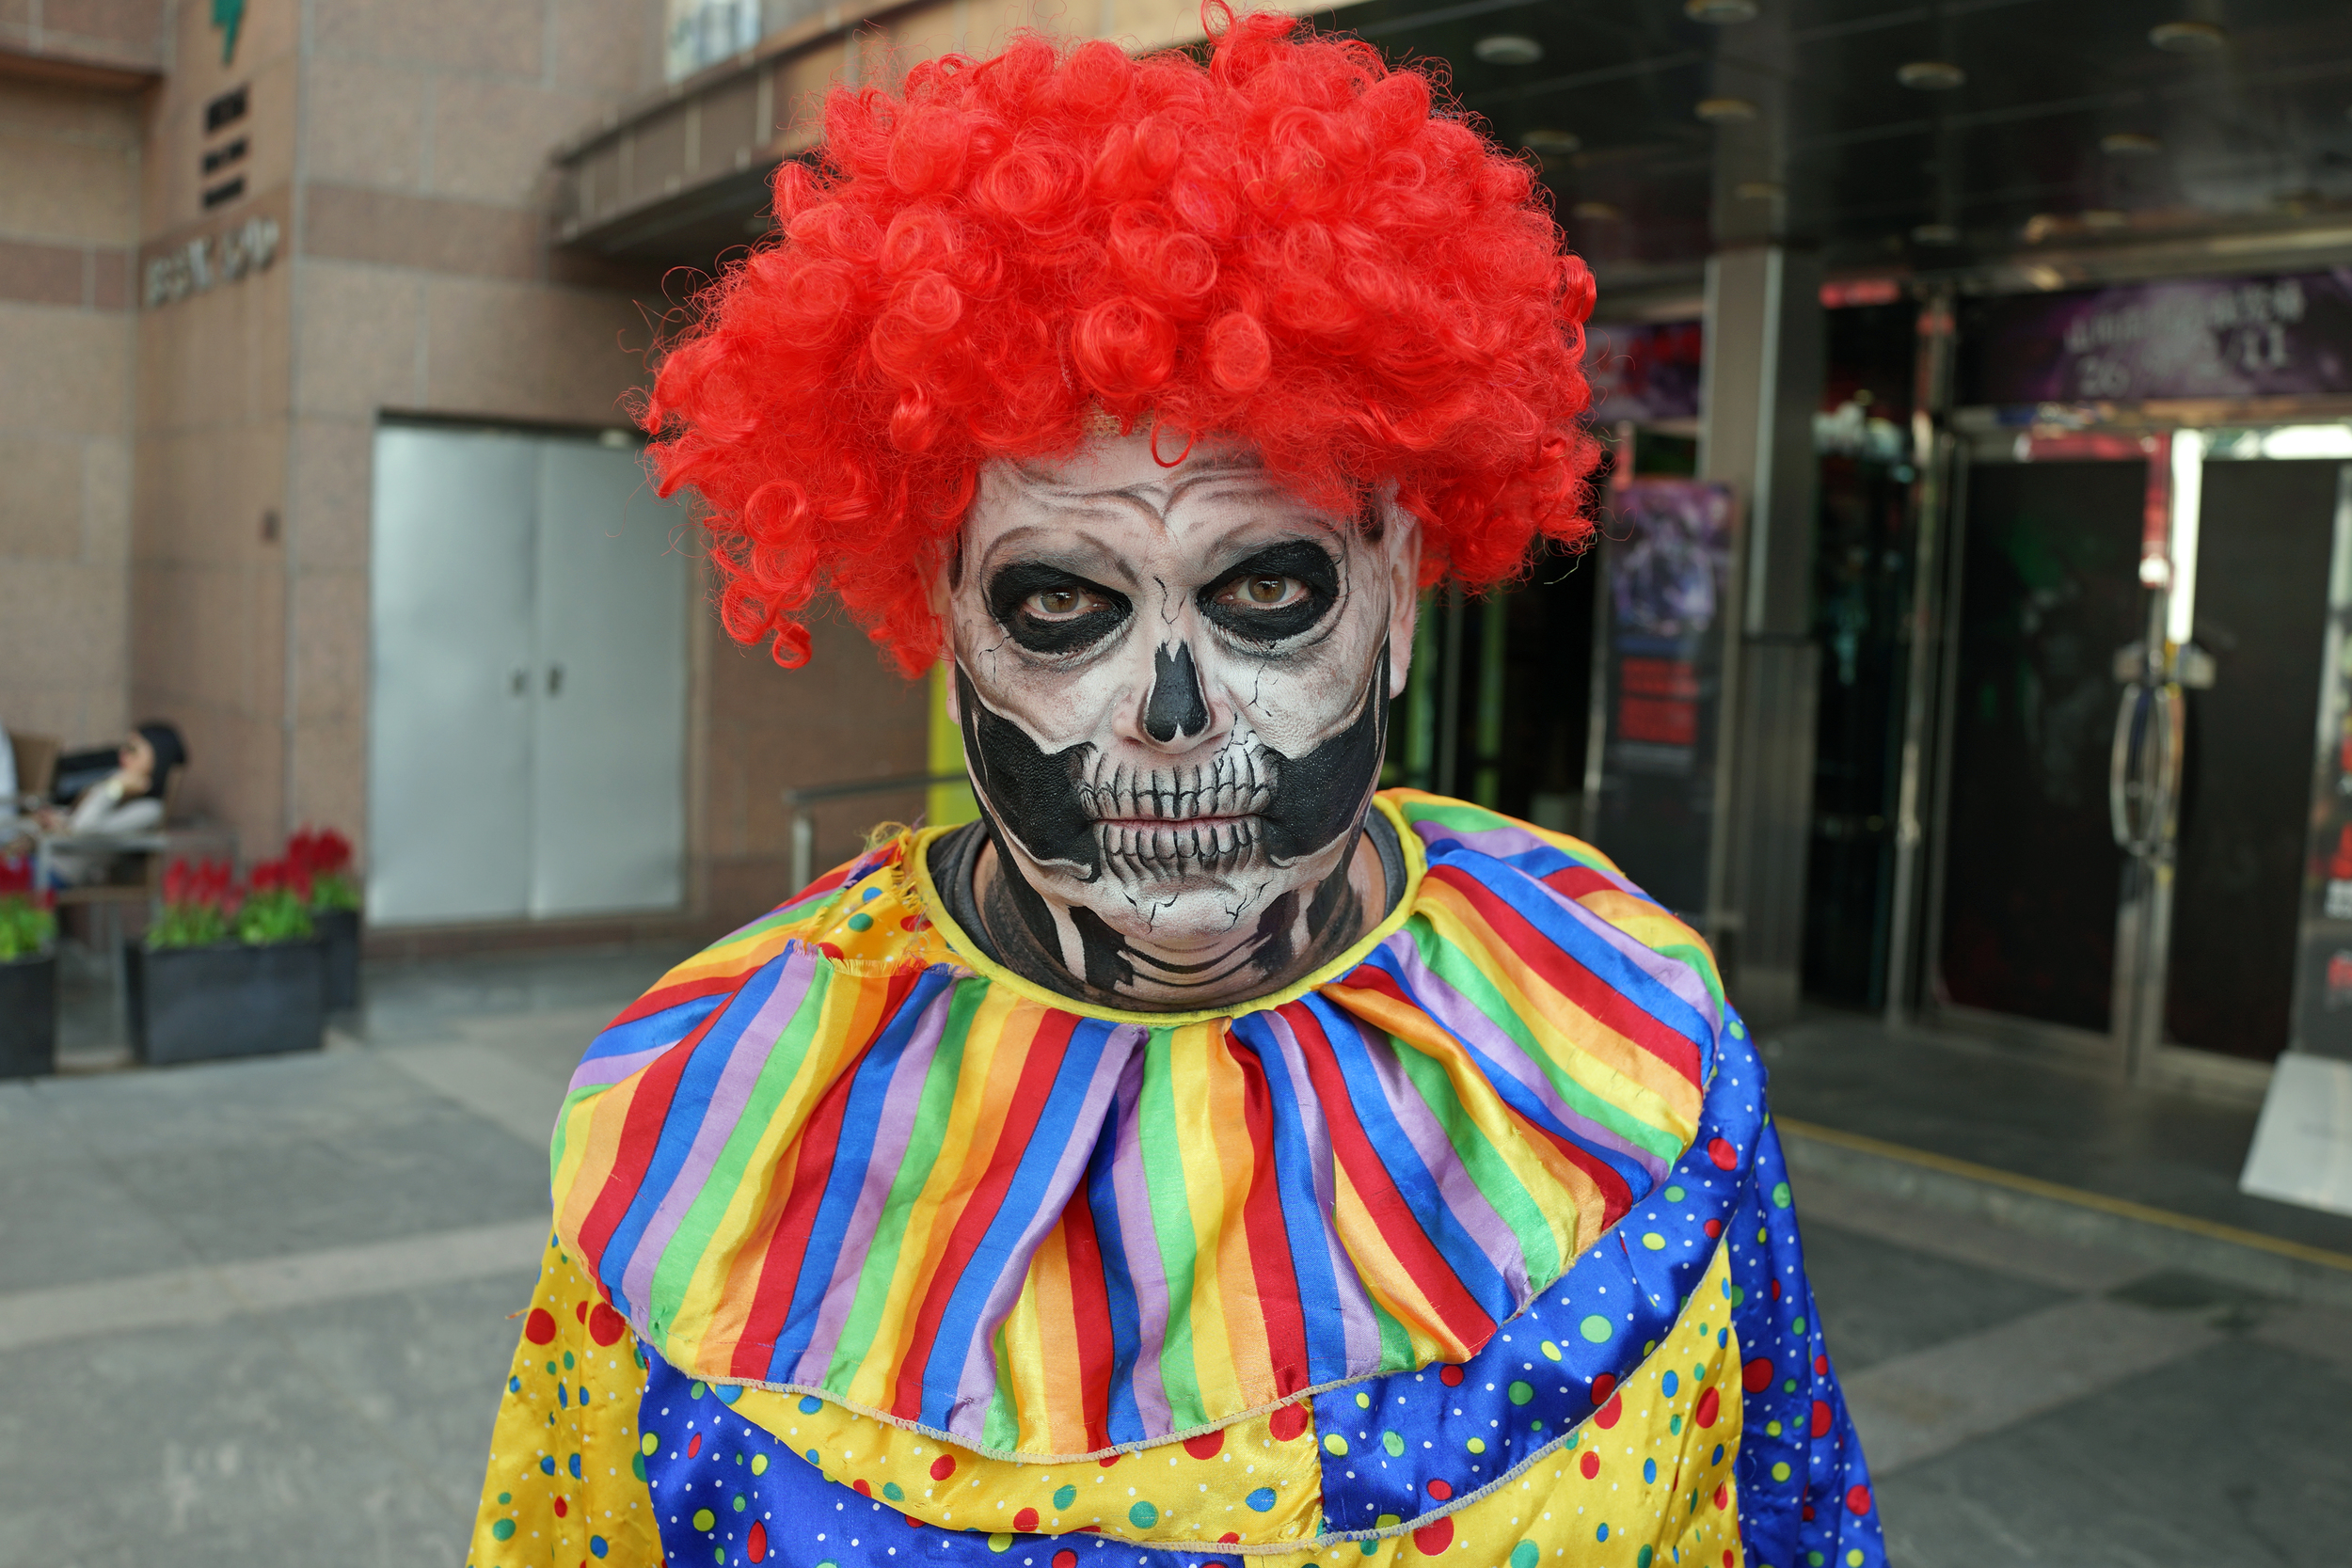 This chap is American, this chap is a haunted clown, I hate clowns, always have always will - I blame the TV Series IT by Stephen King and the evil clown played by Tim Curry. I HATE CLOWNS!!